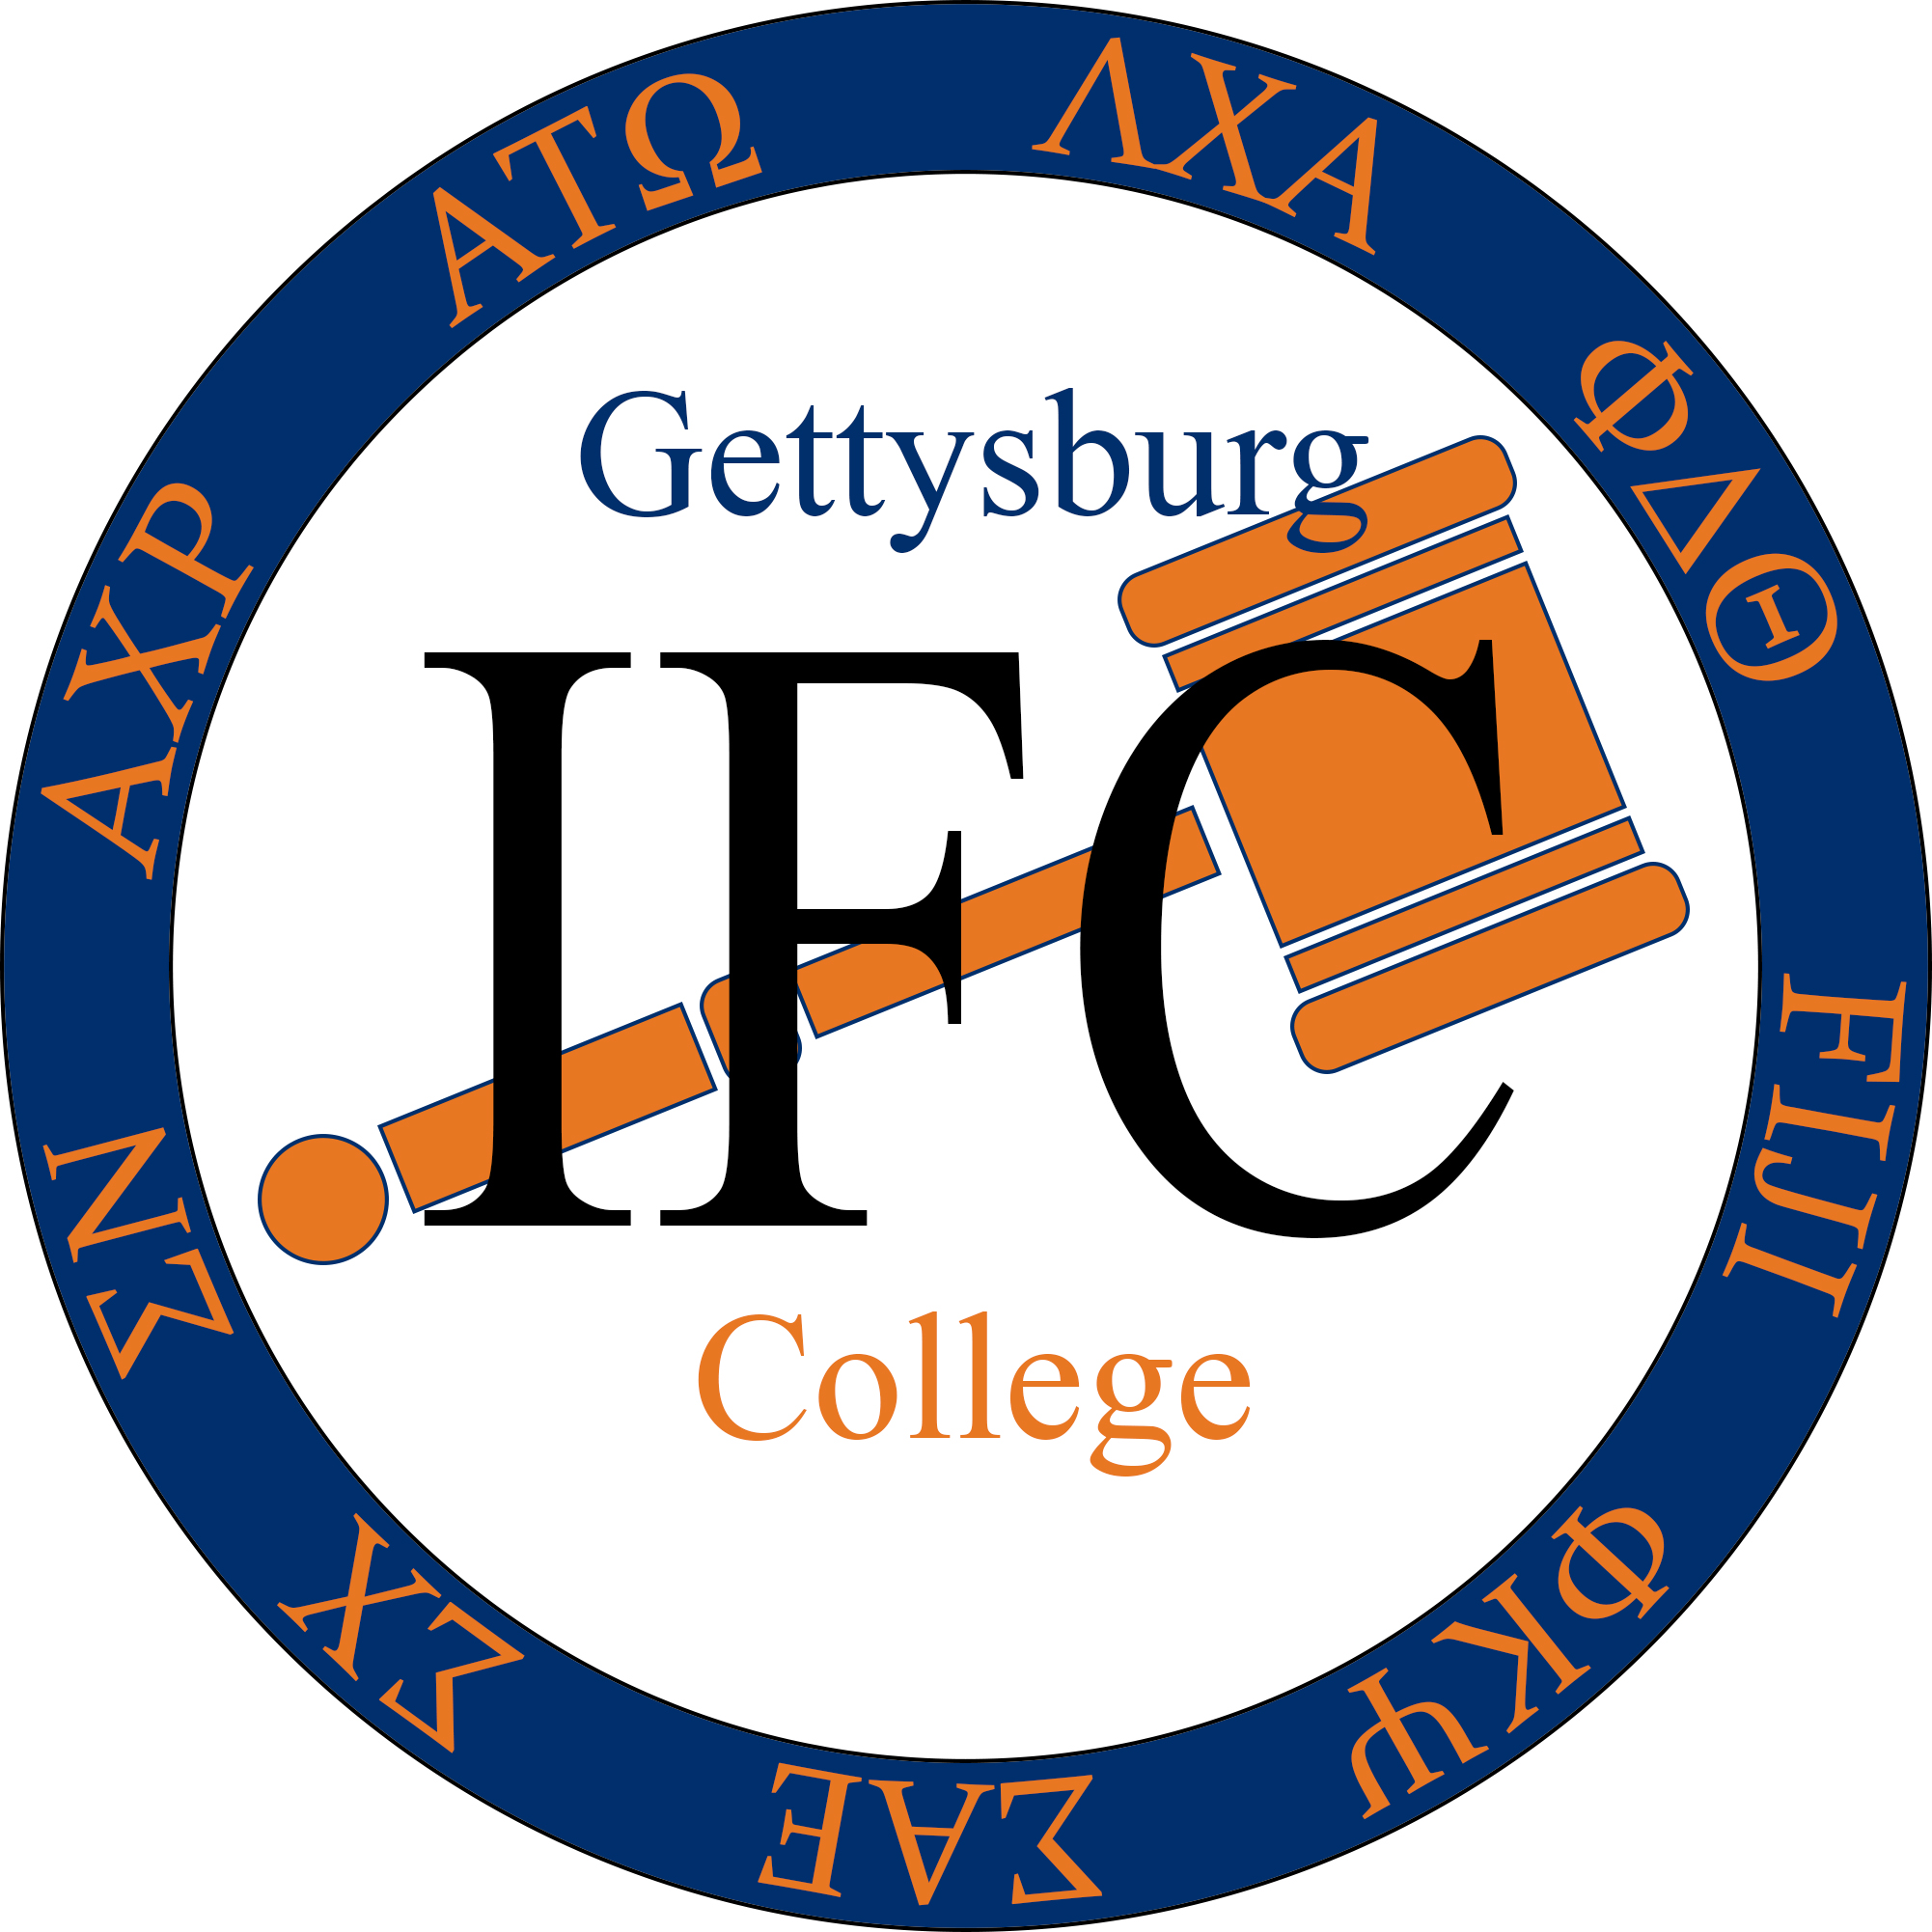 Gettysburg College Interfraternity Council